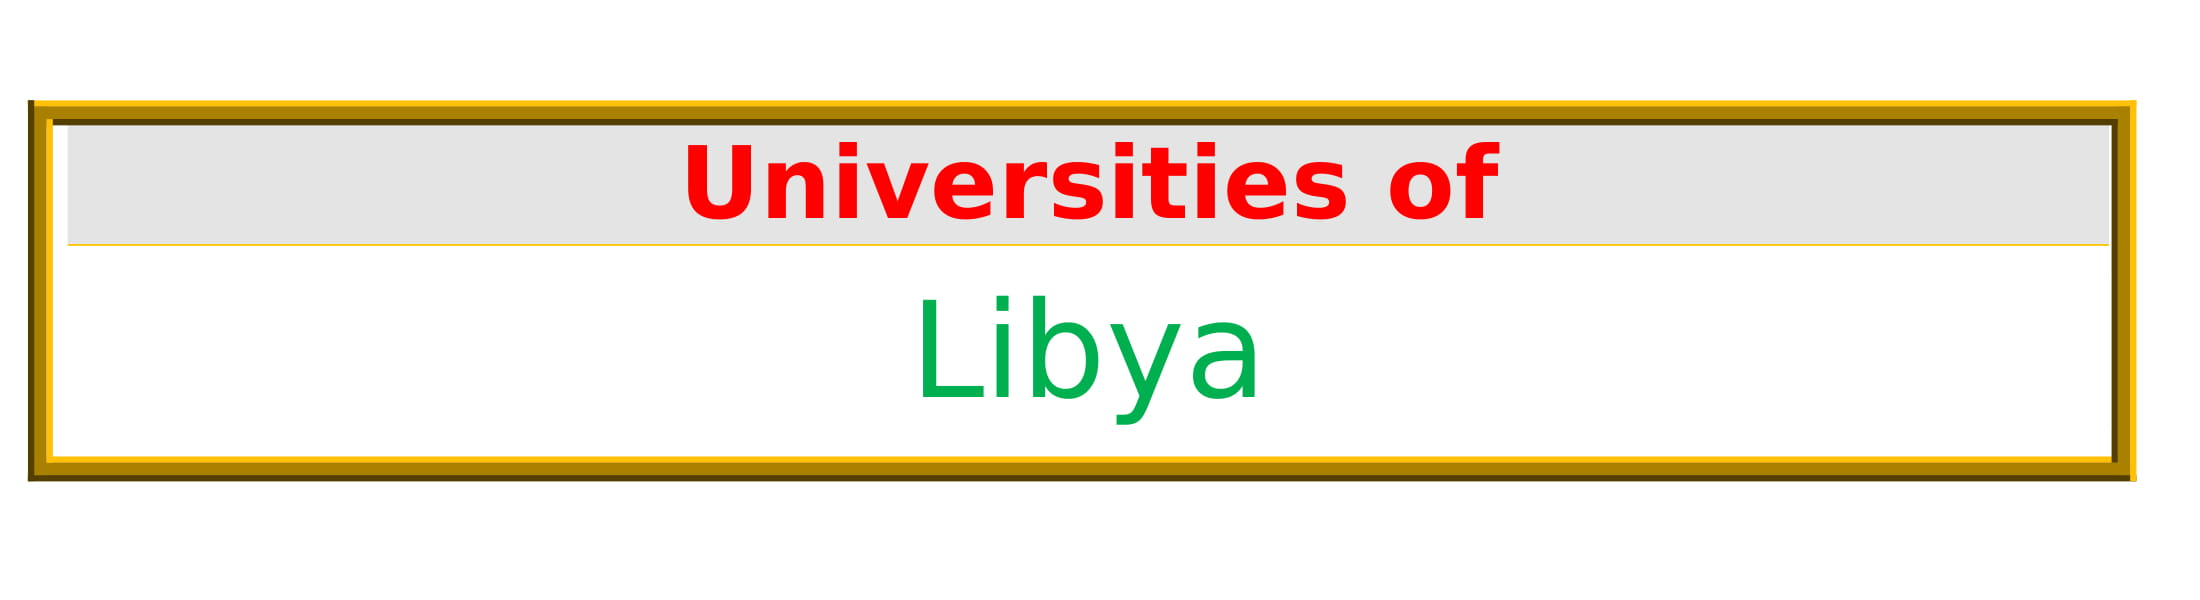 List of Universities in Libya